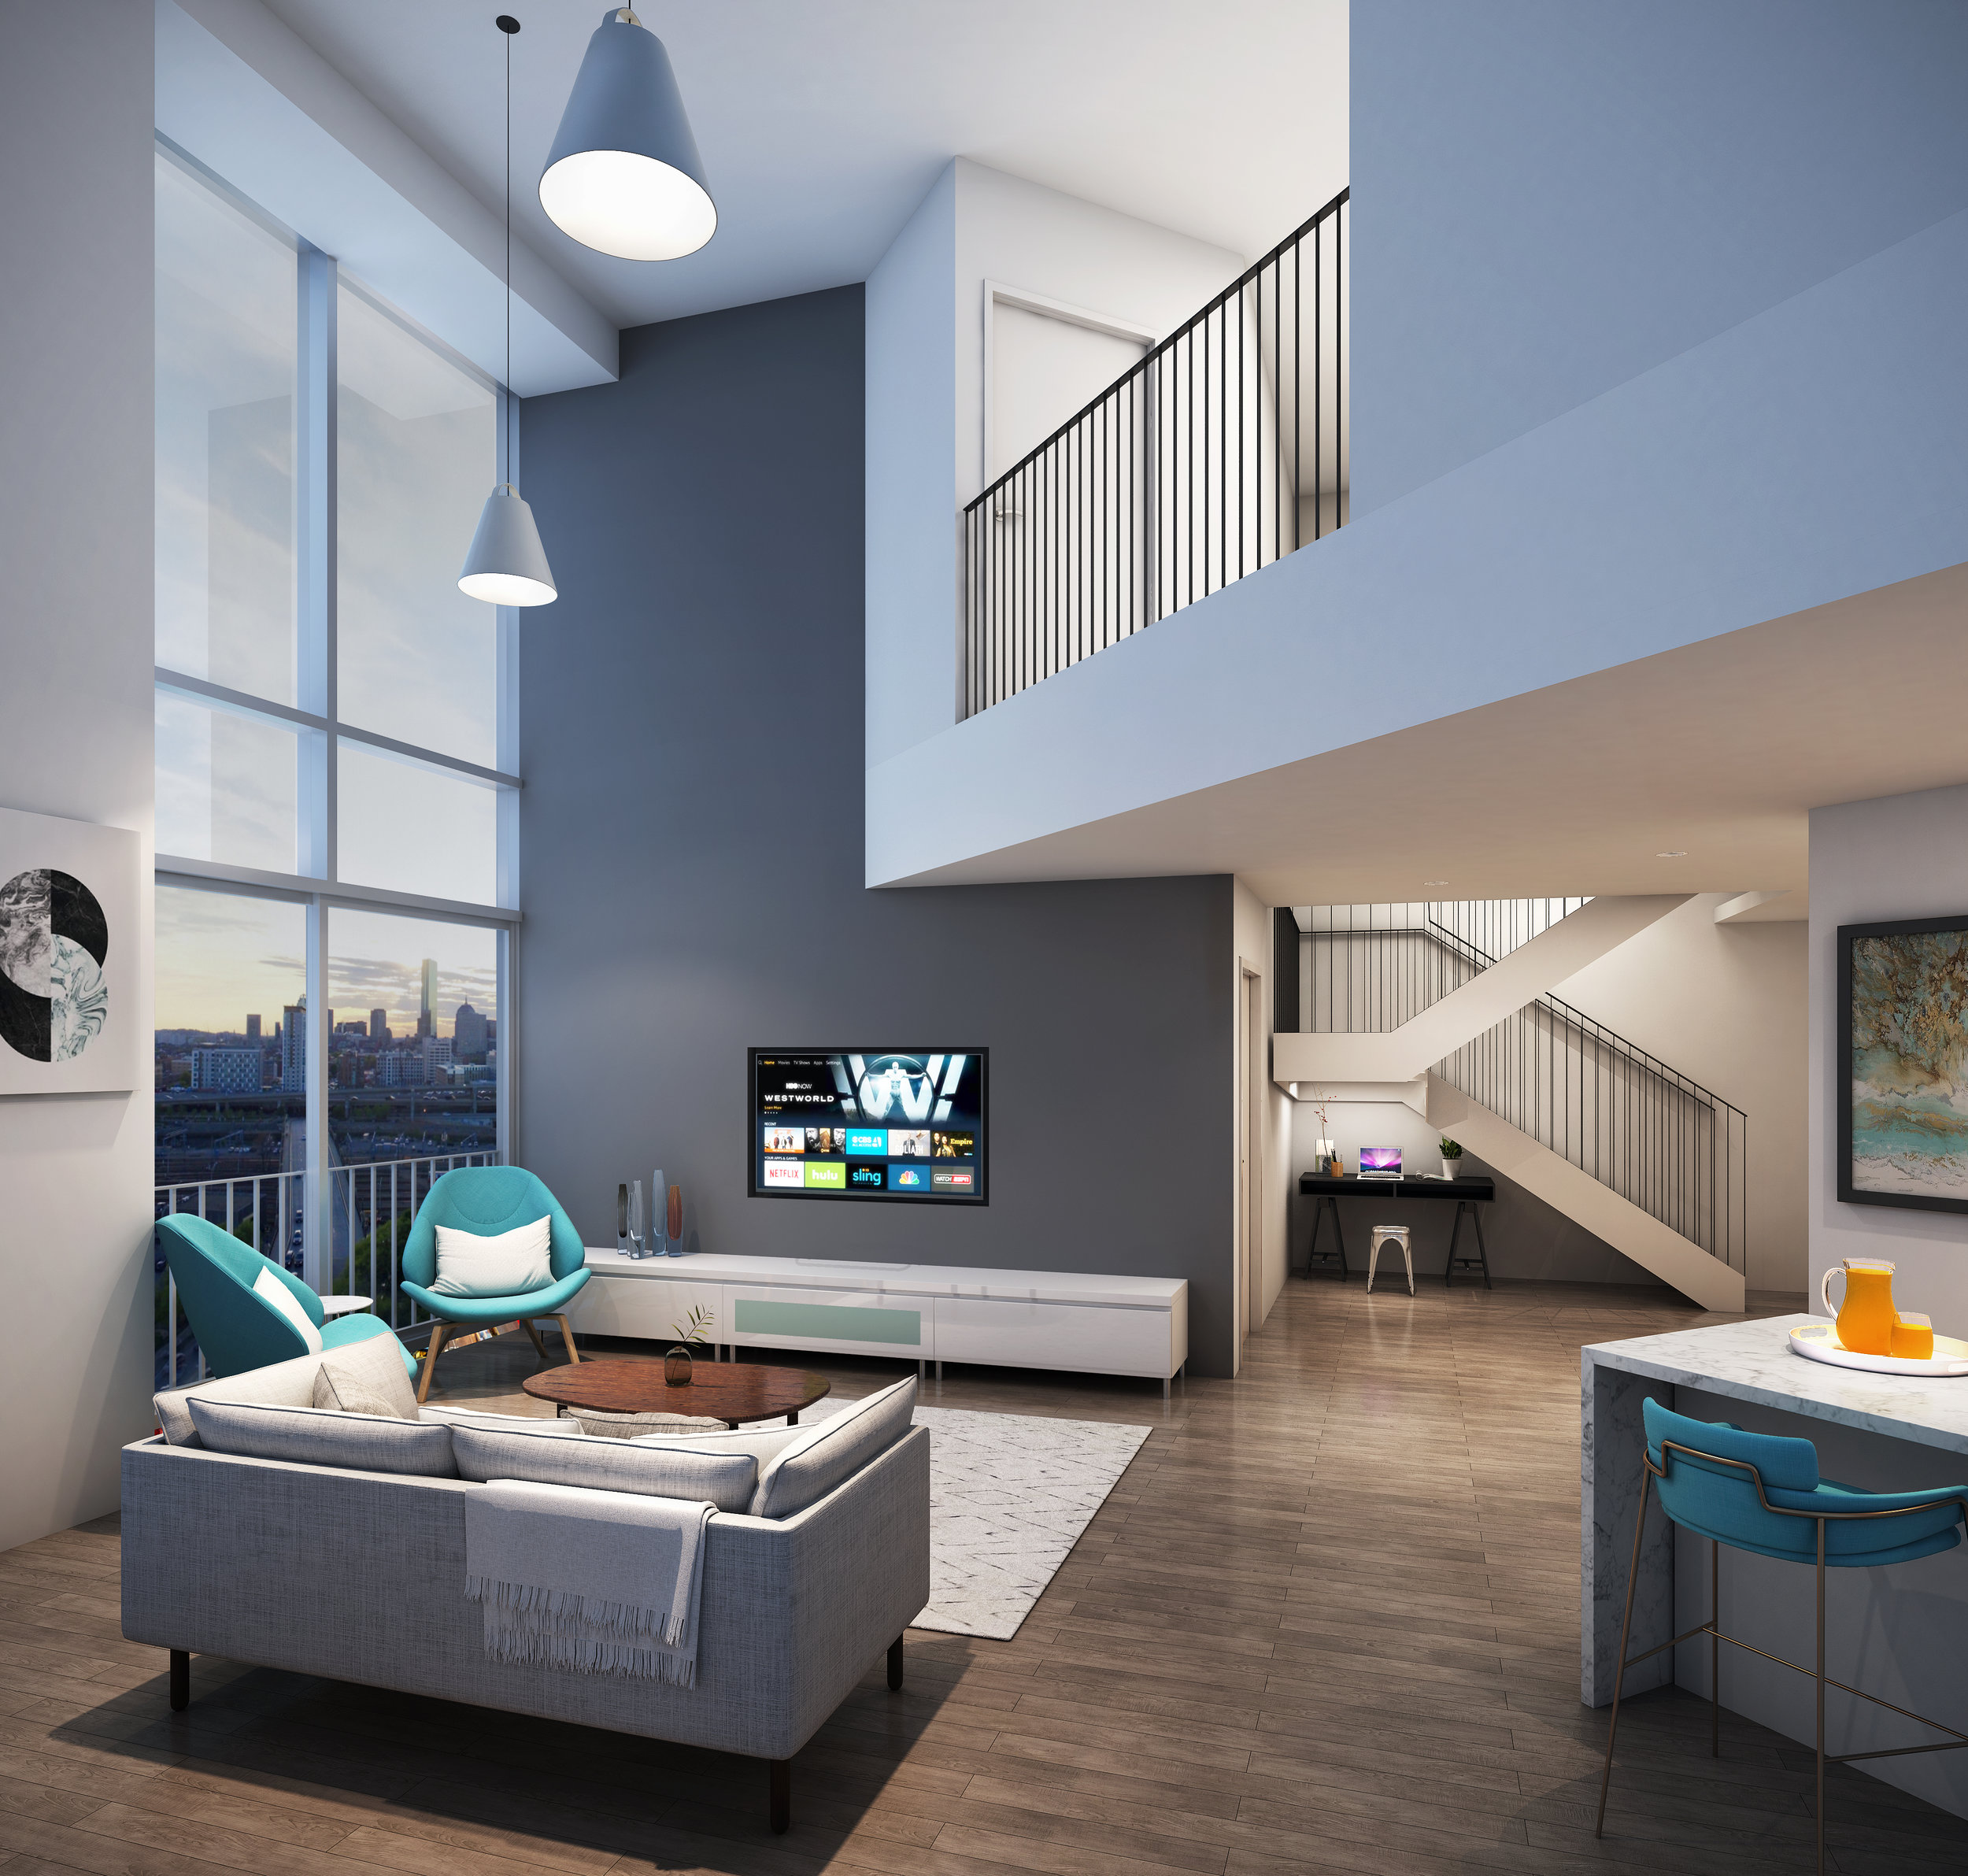 DUPLEX LIVING SPACE